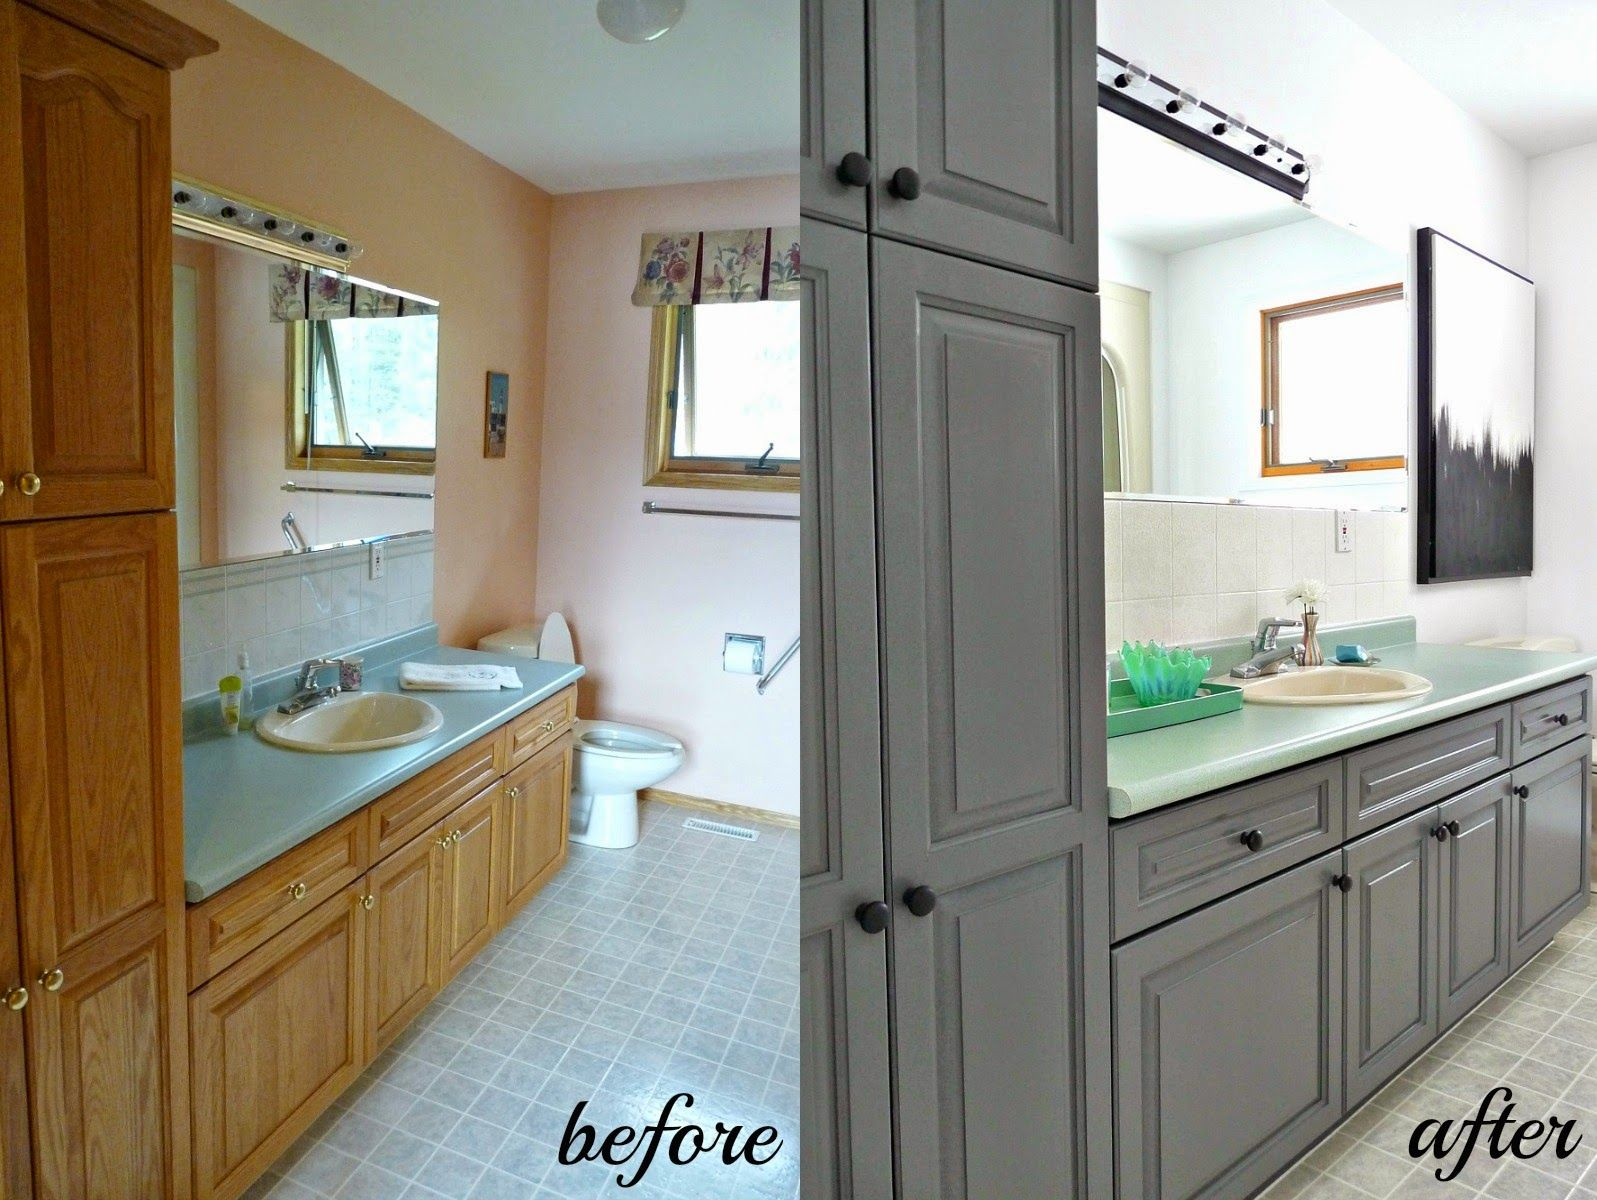 Bathroom cabinet refinishing - Cabinet Refinishing 101 Latex Paint Vs Stain Vs Rust Oleum Cabinet Transformations